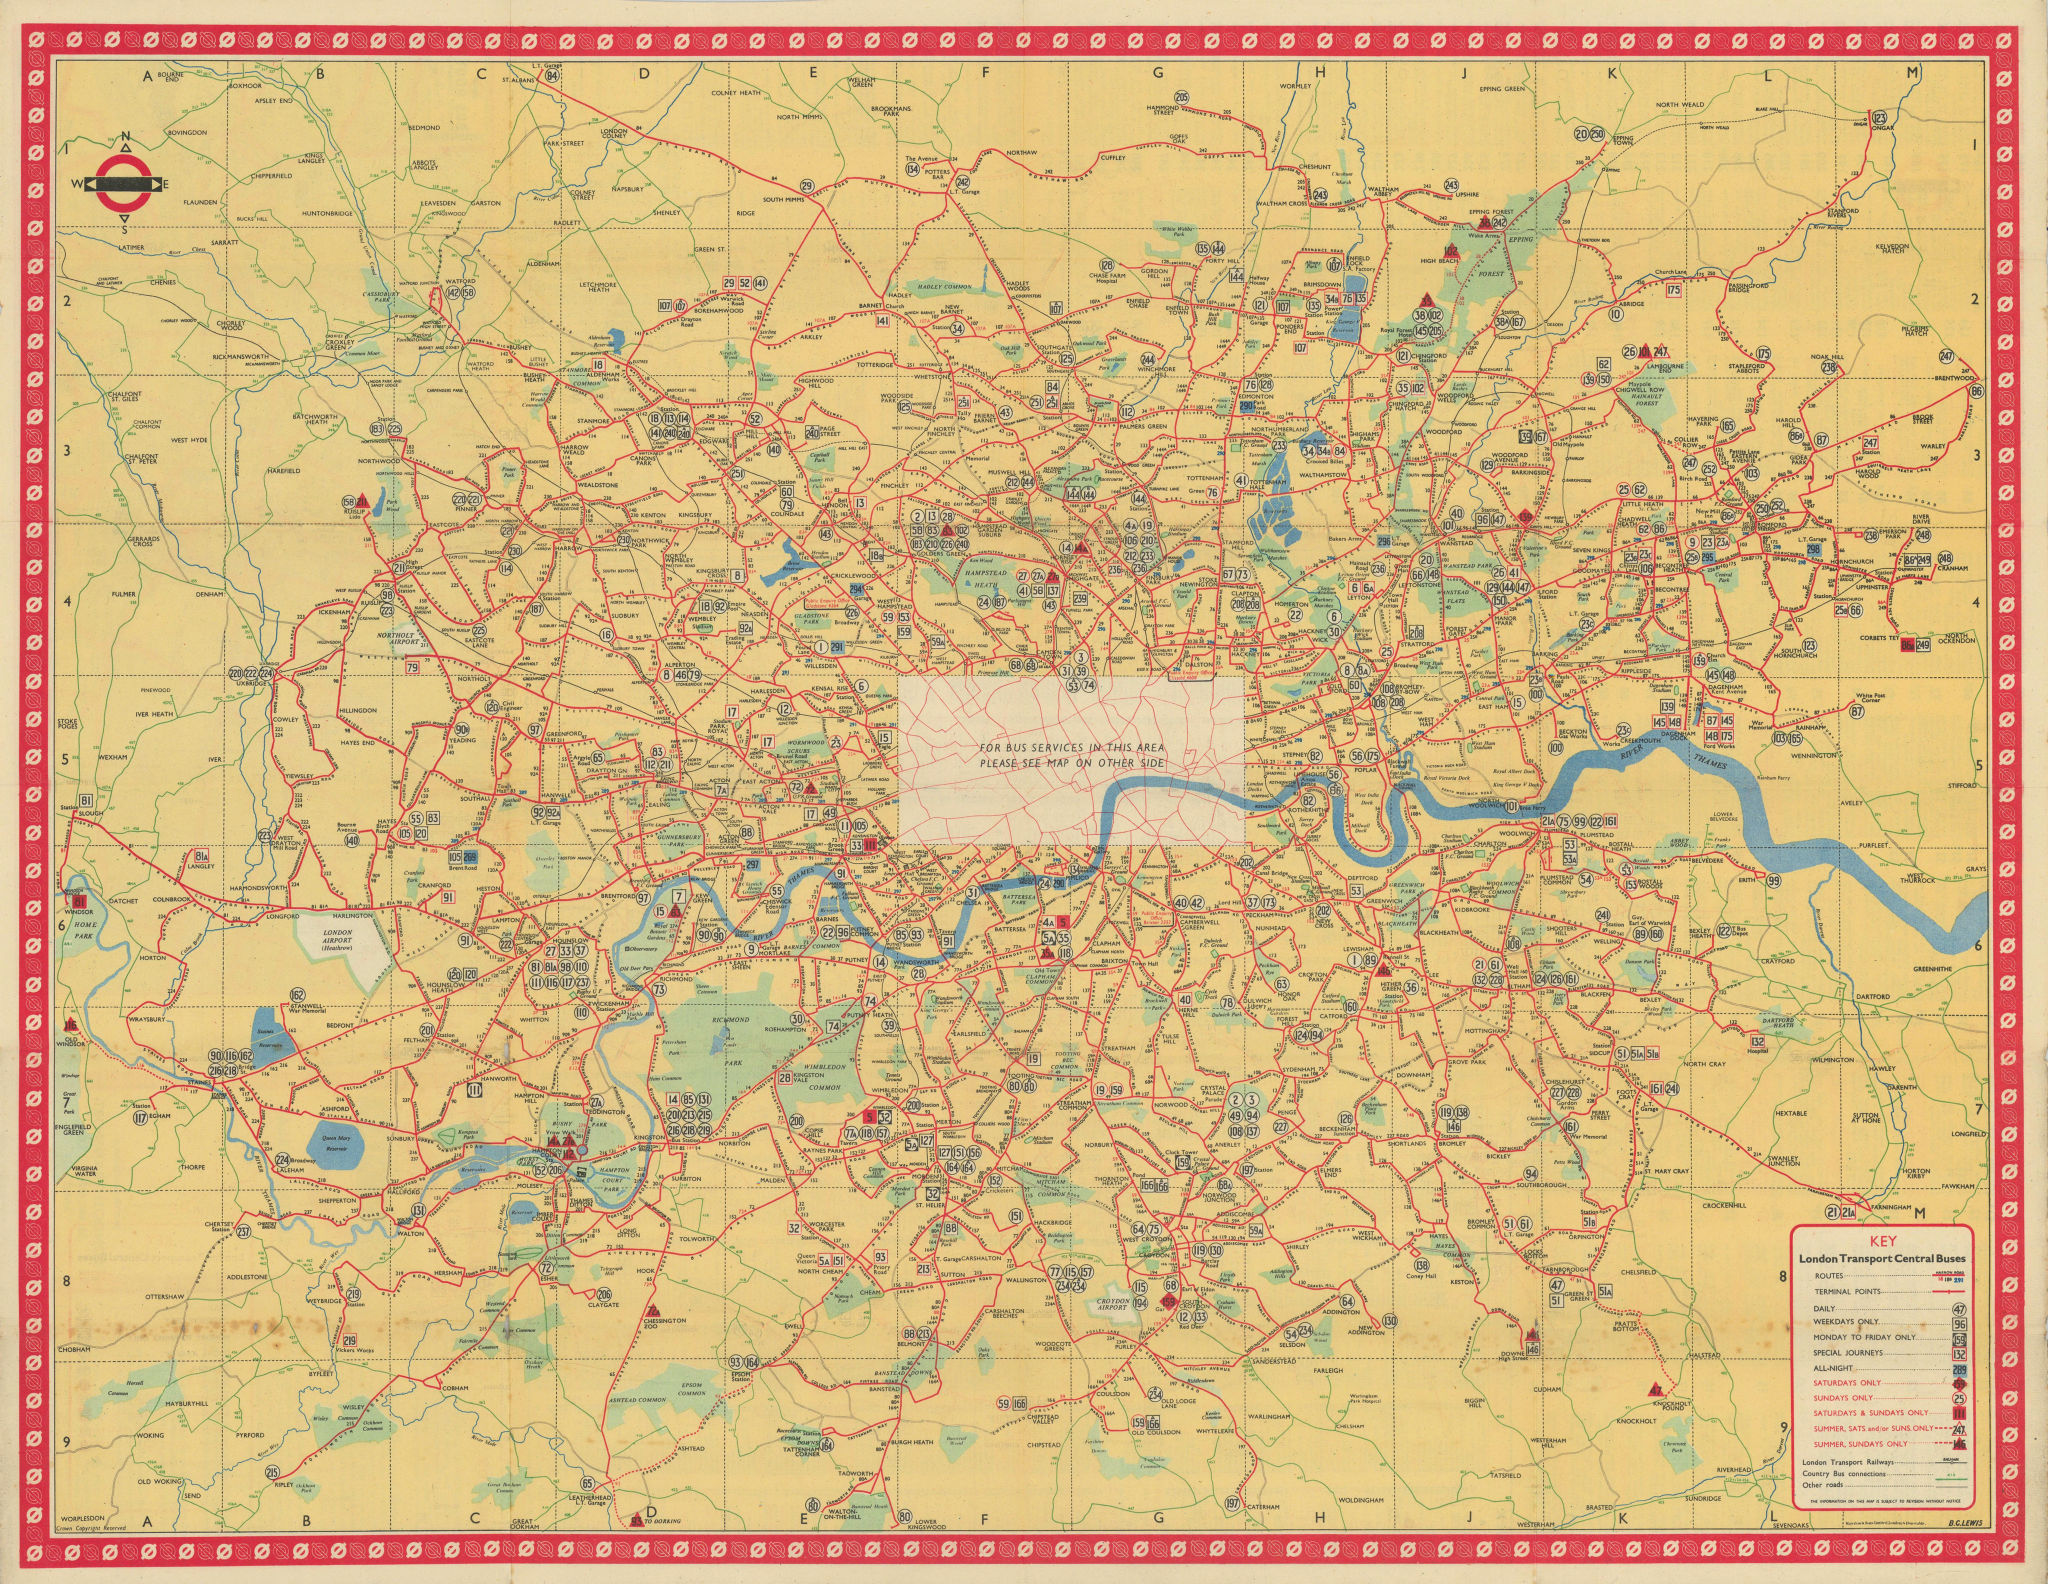 London Transport Bus map Central Area. LEWIS January 1950 old vintage